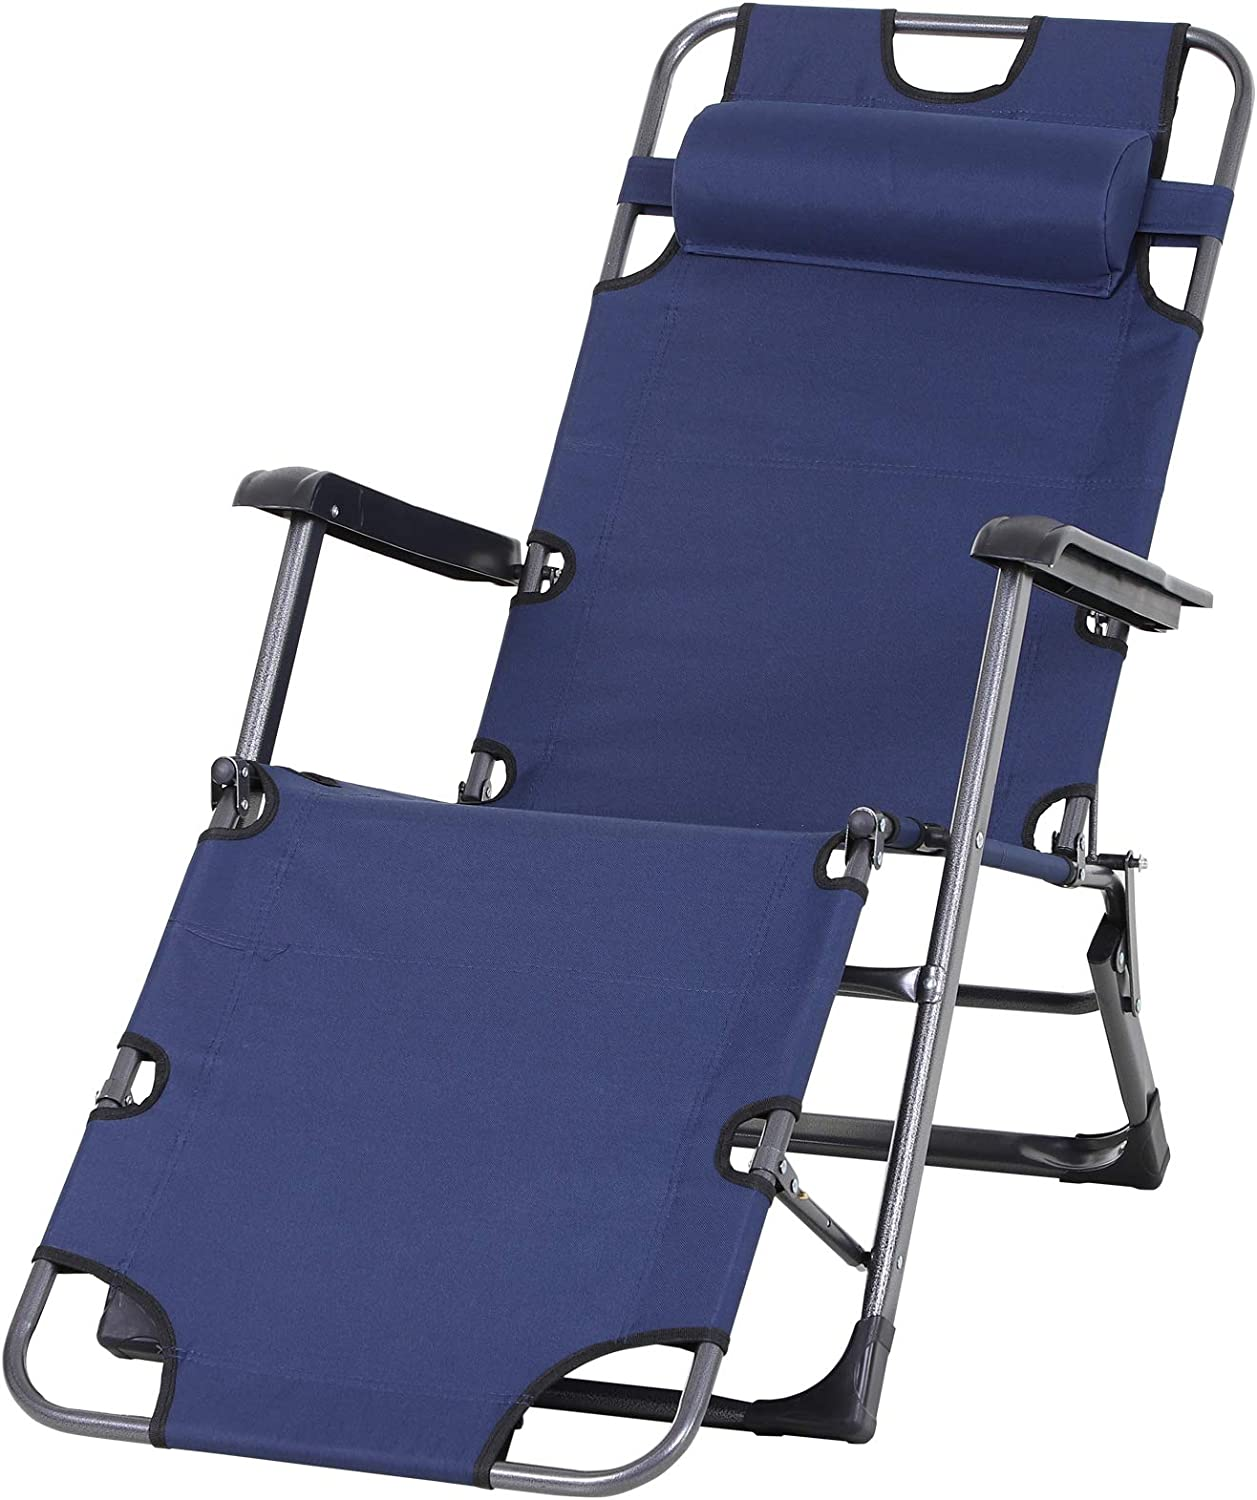 Outsunny Outdoor Folding Max 59% OFF Reclining Ranking TOP20 Lounge Chairs Patio Beach Oxf